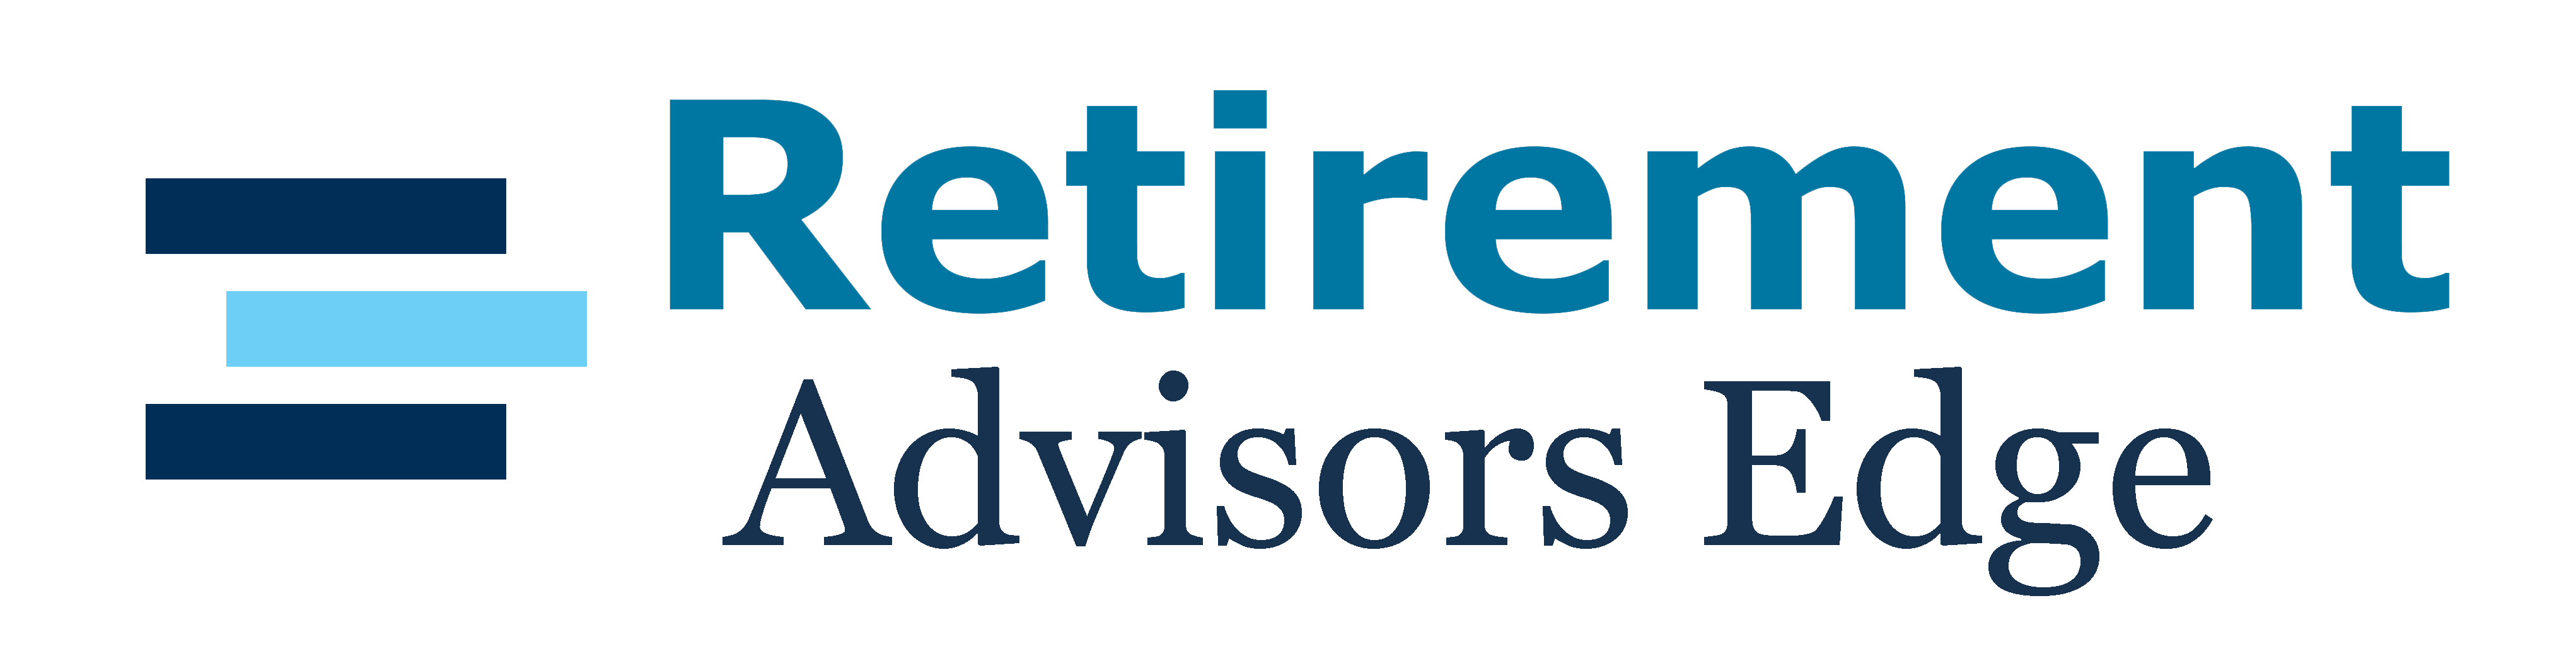 Retirement Advisors Edge Logo.png